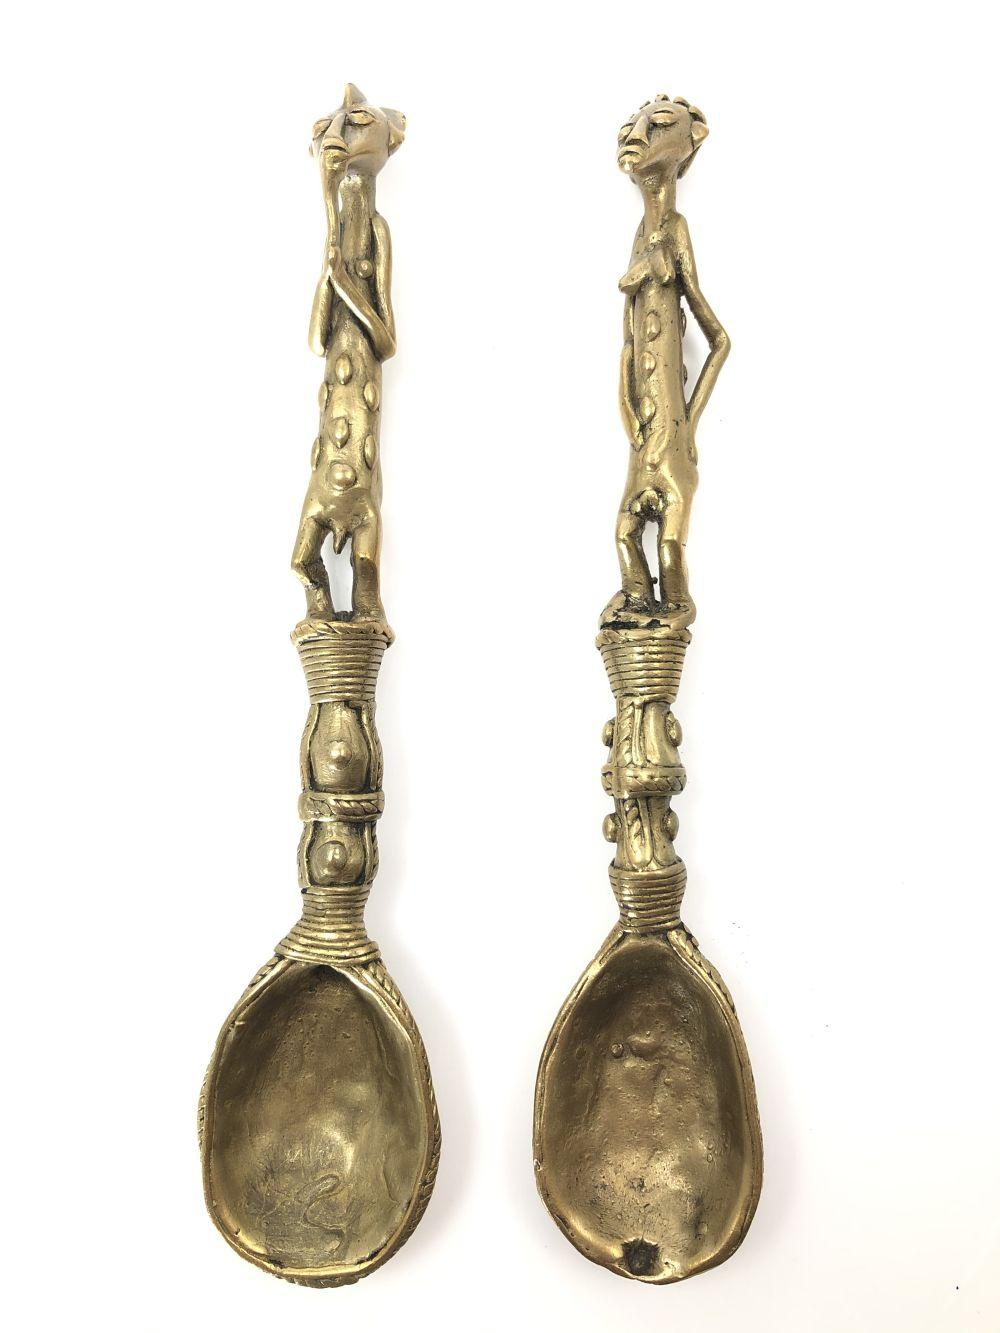 2 Antique Brass African Spoons